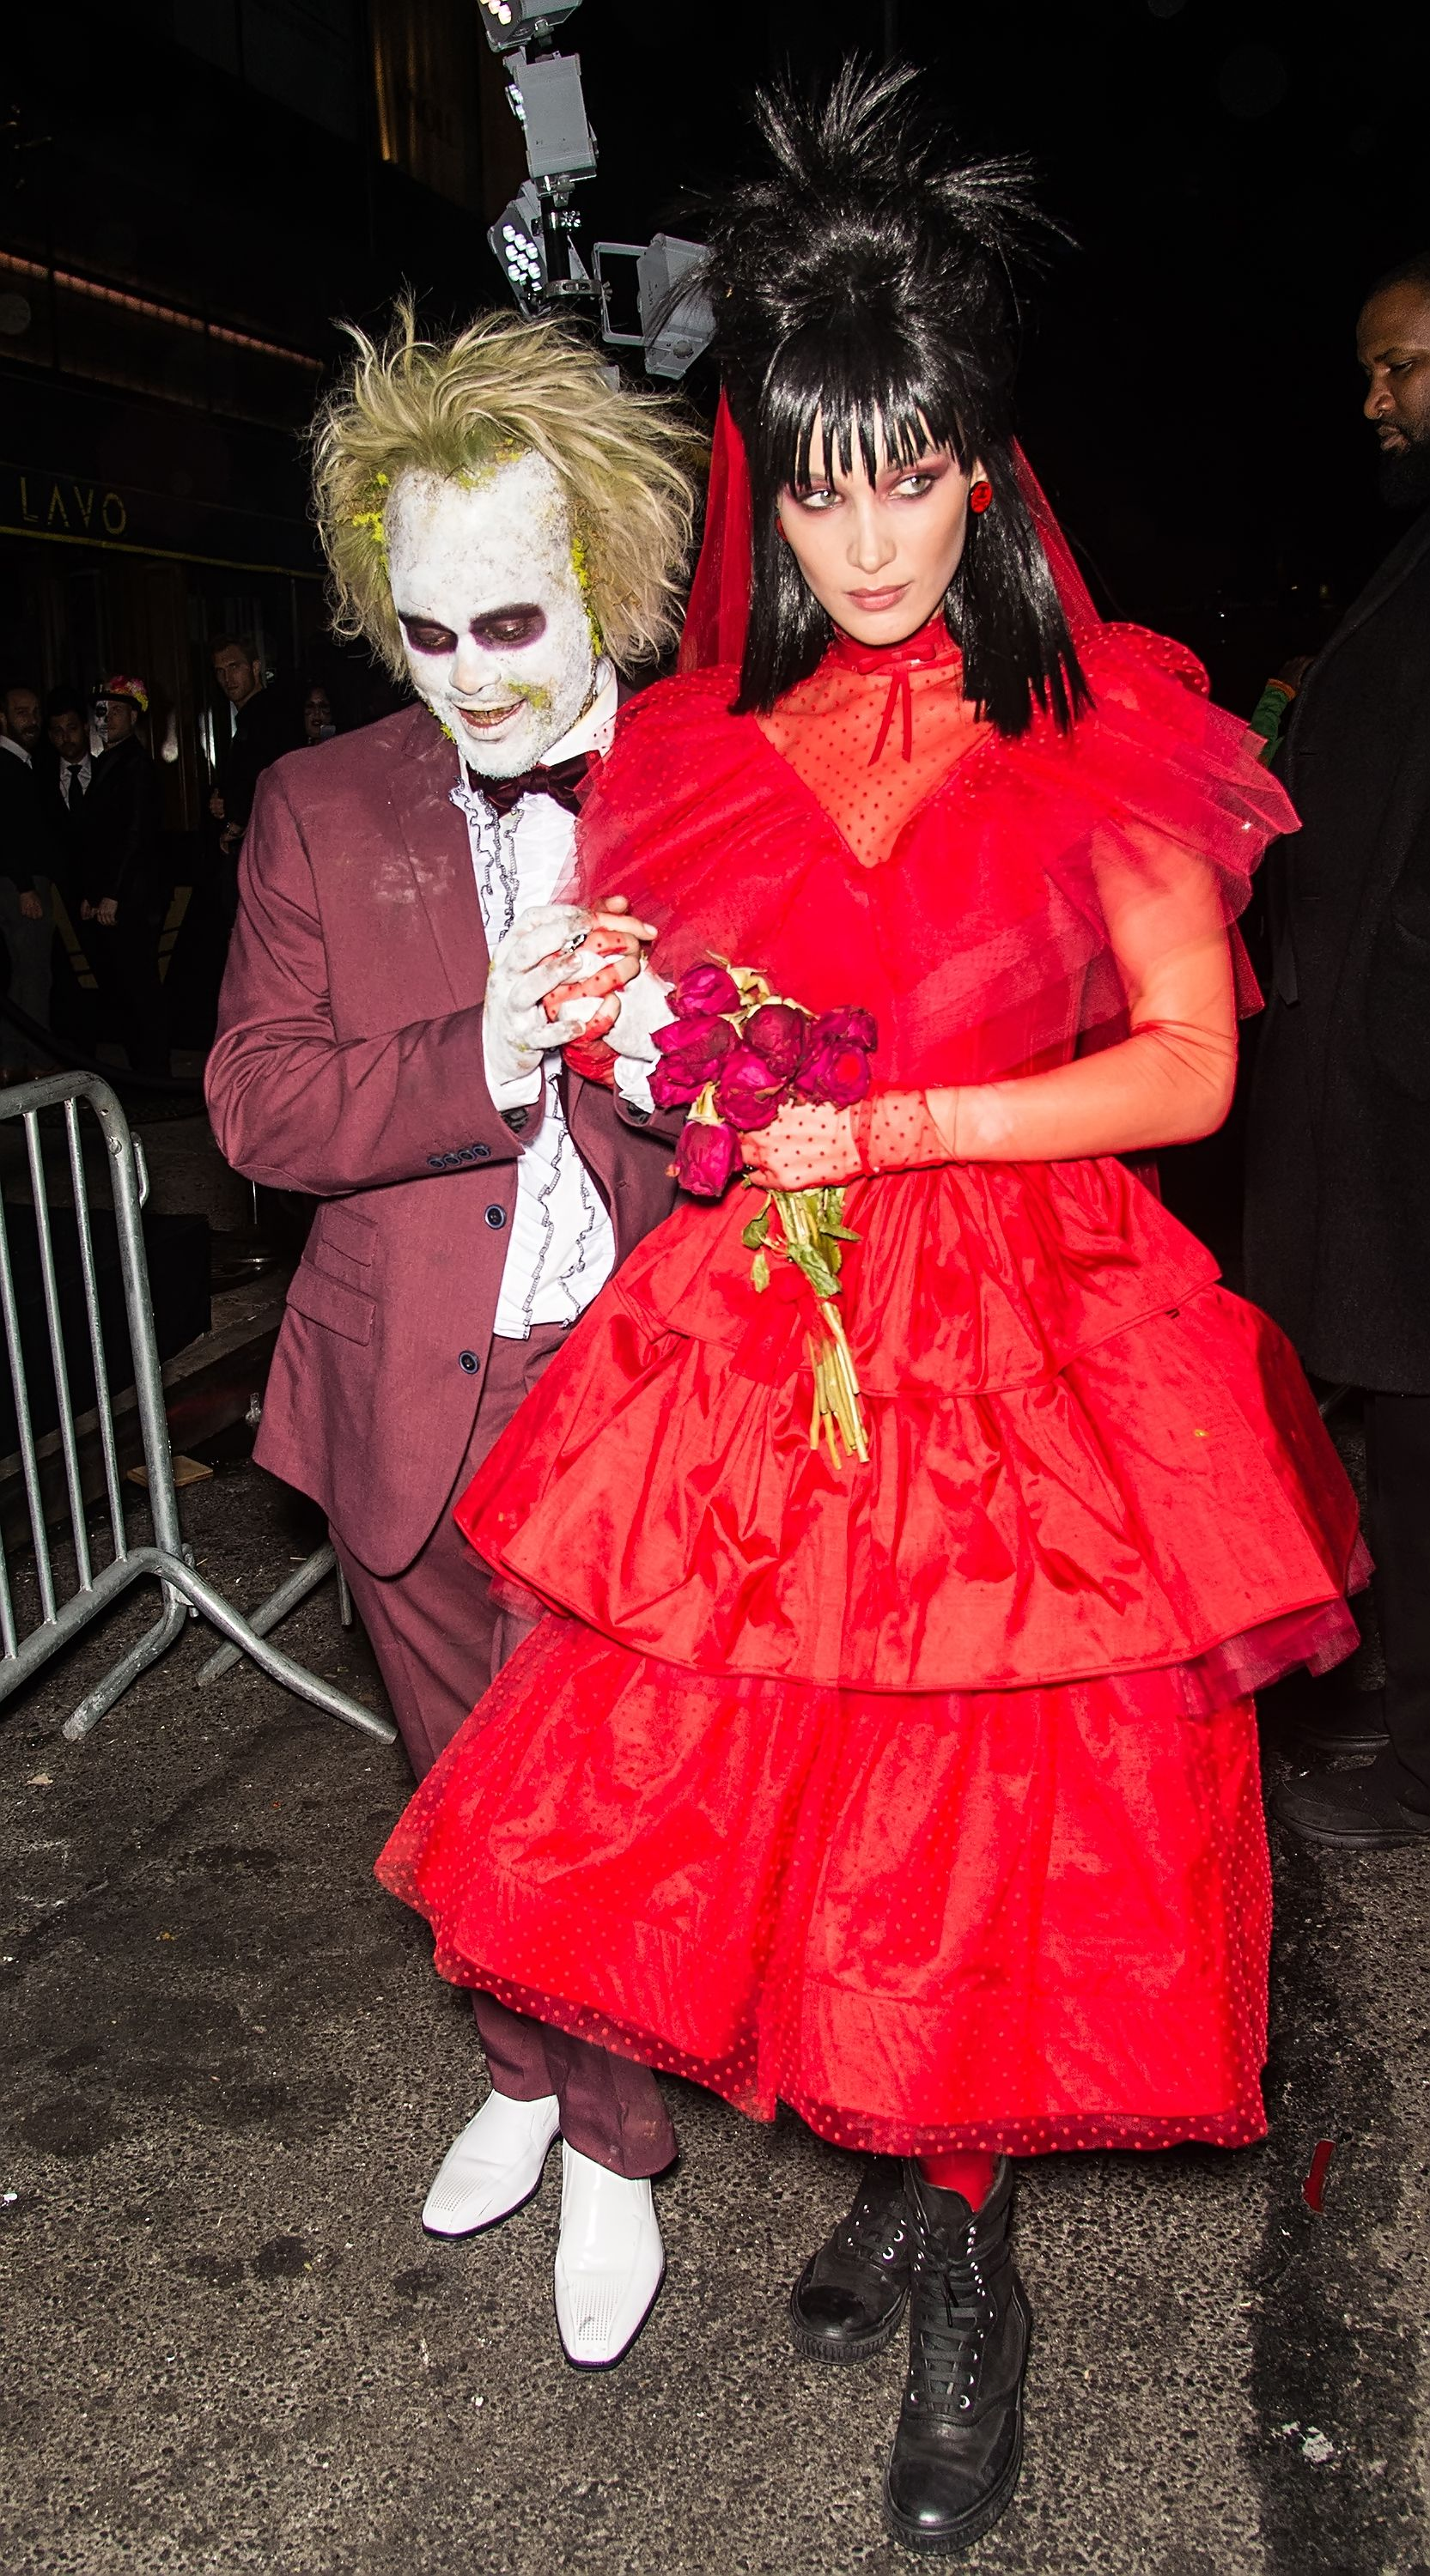 74 Best Couples Halloween Costumes 2021- Cute & Funny Couples Halloween Costume Ideas